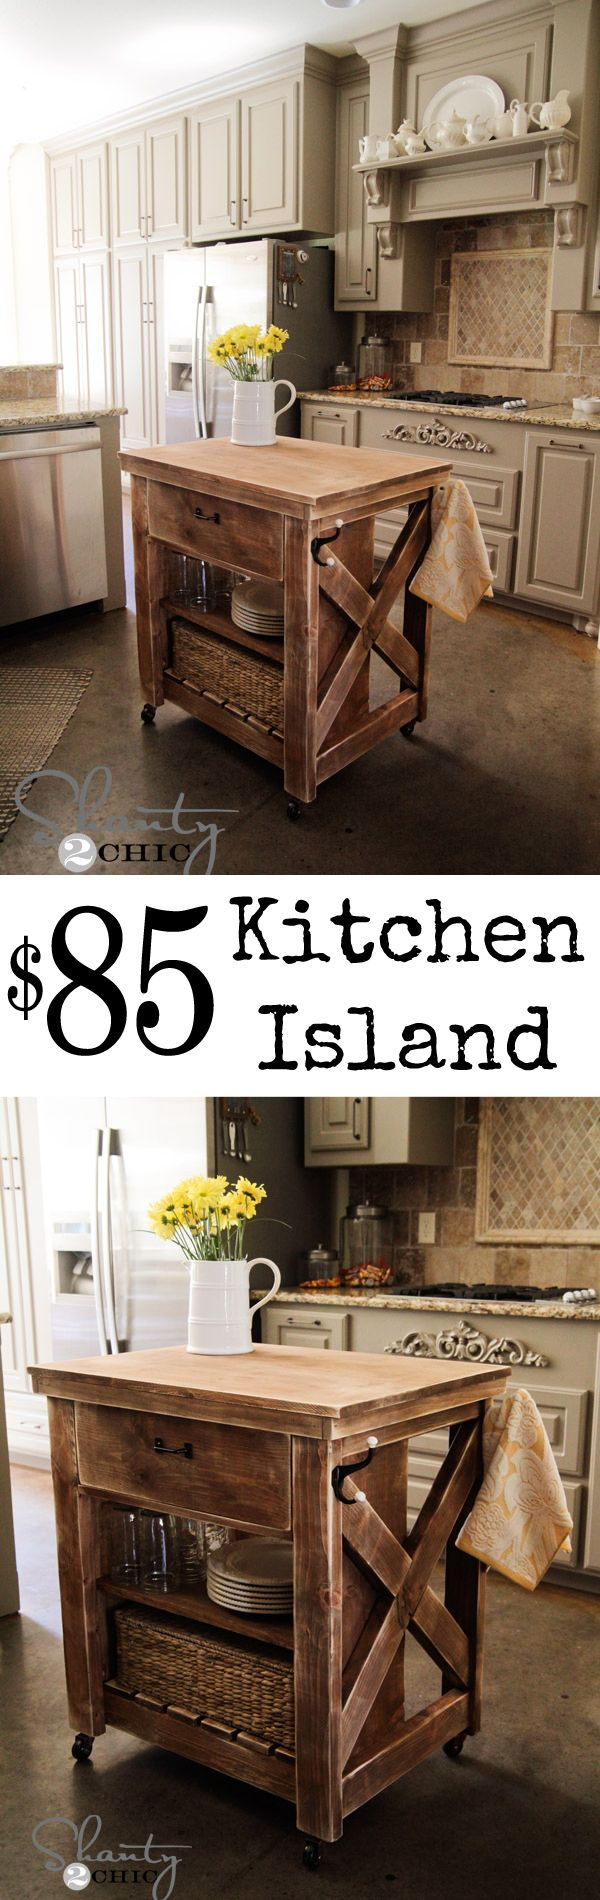 Diy Rolling Kitchen Island 77 Best Images About Kitchen On Pinterest Diy Spice Rack